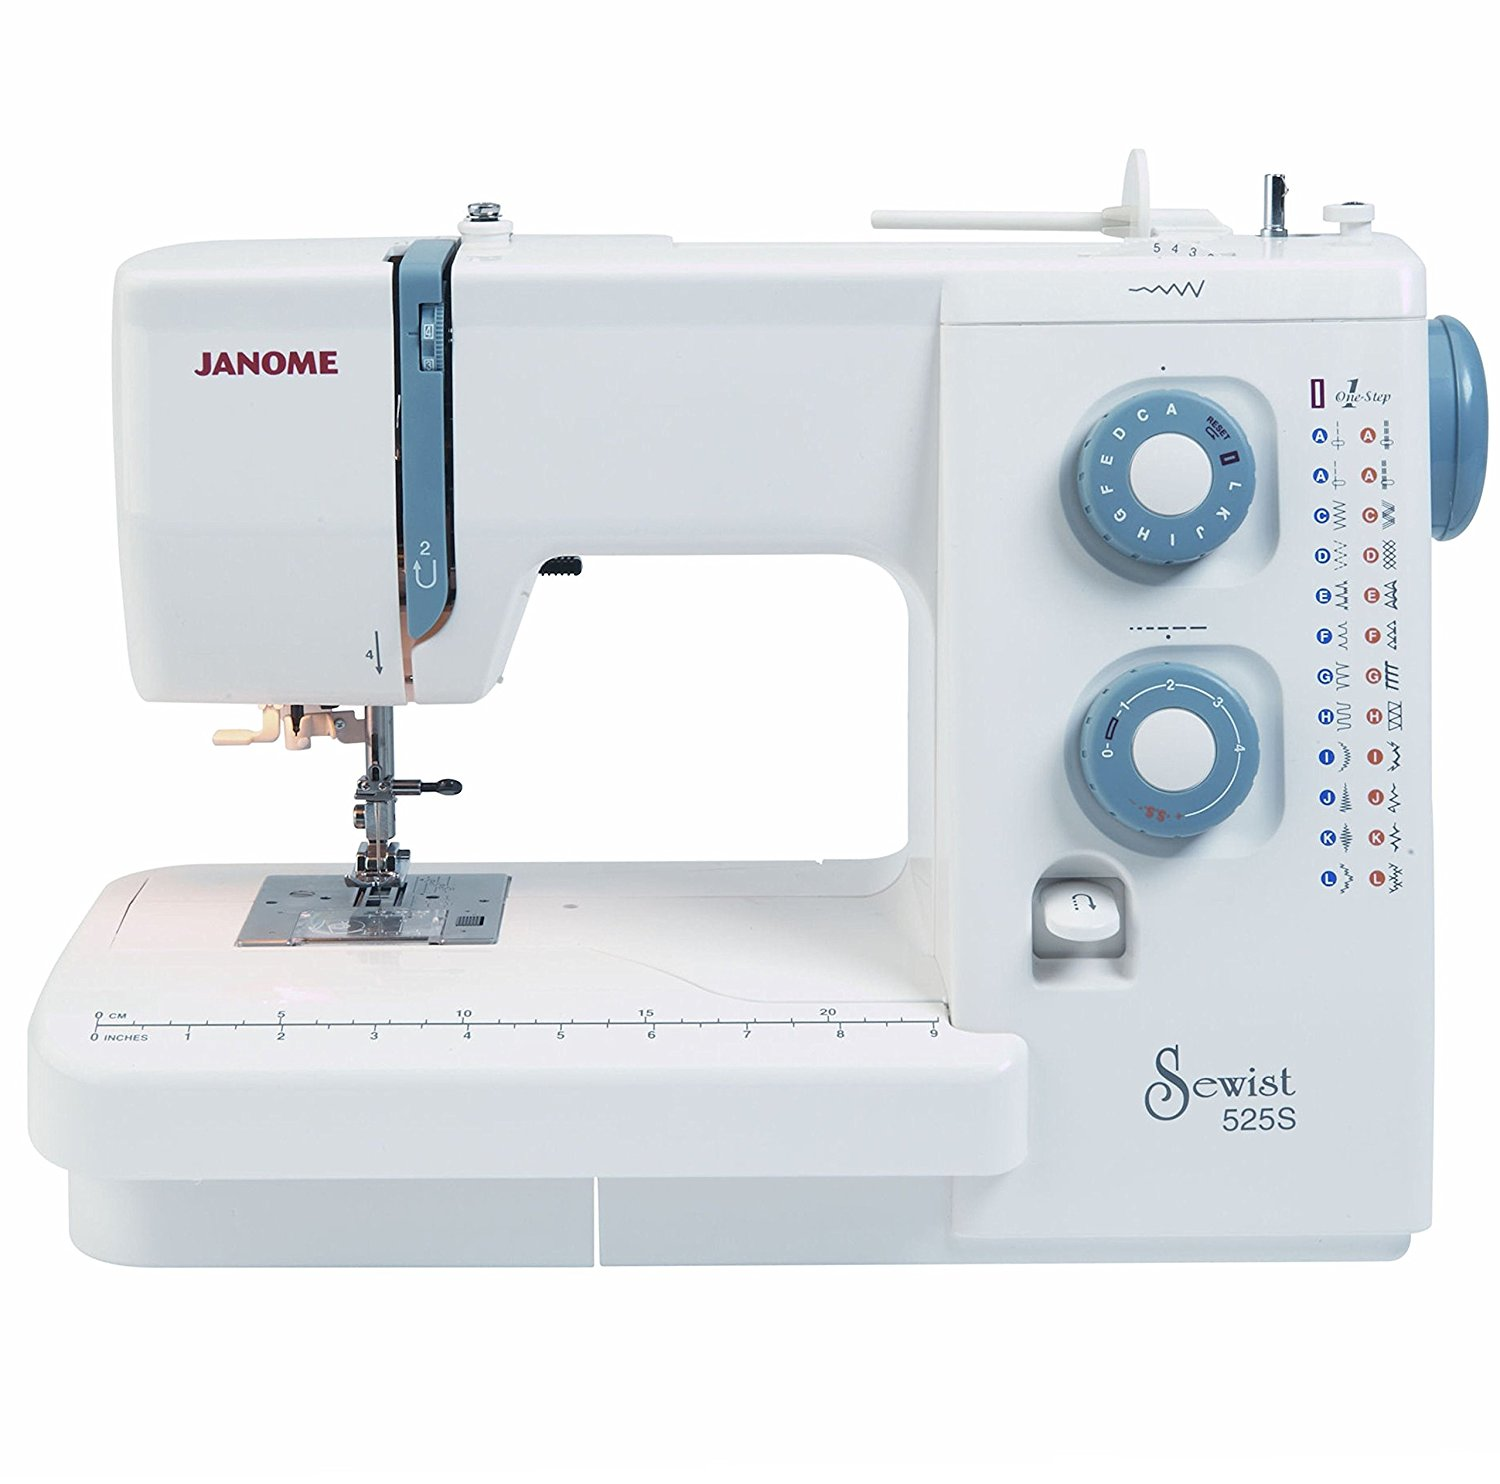 com sewing amazon stitches dp machine quilt quilting built with janome in computerized